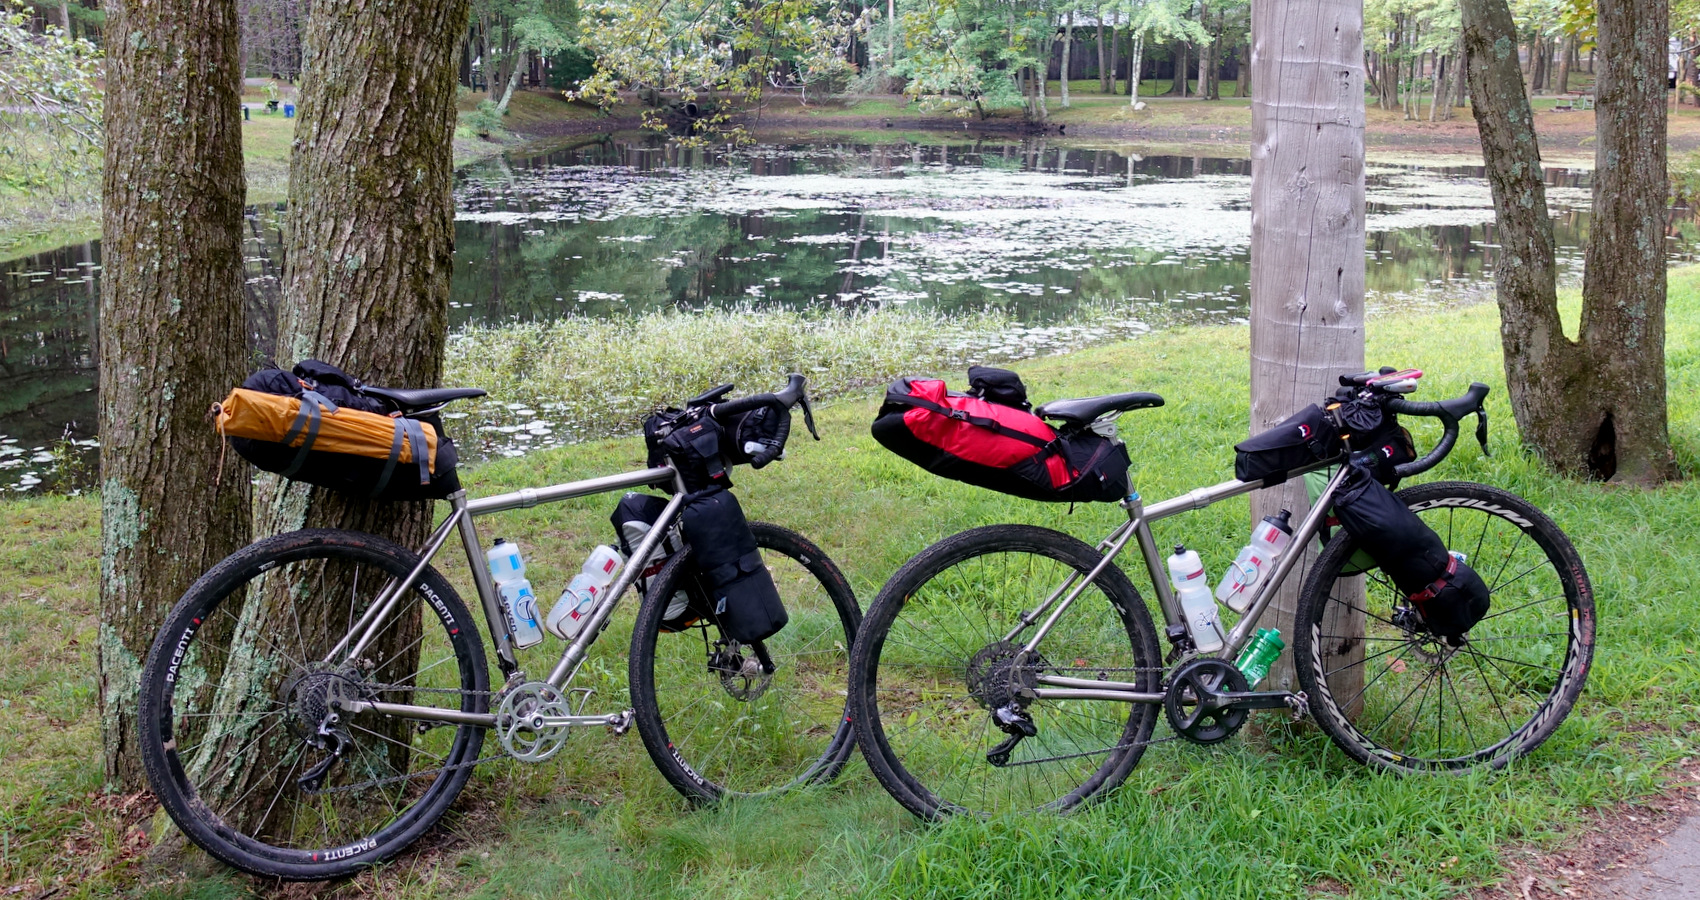 gravel bikepacking by a pond's edge